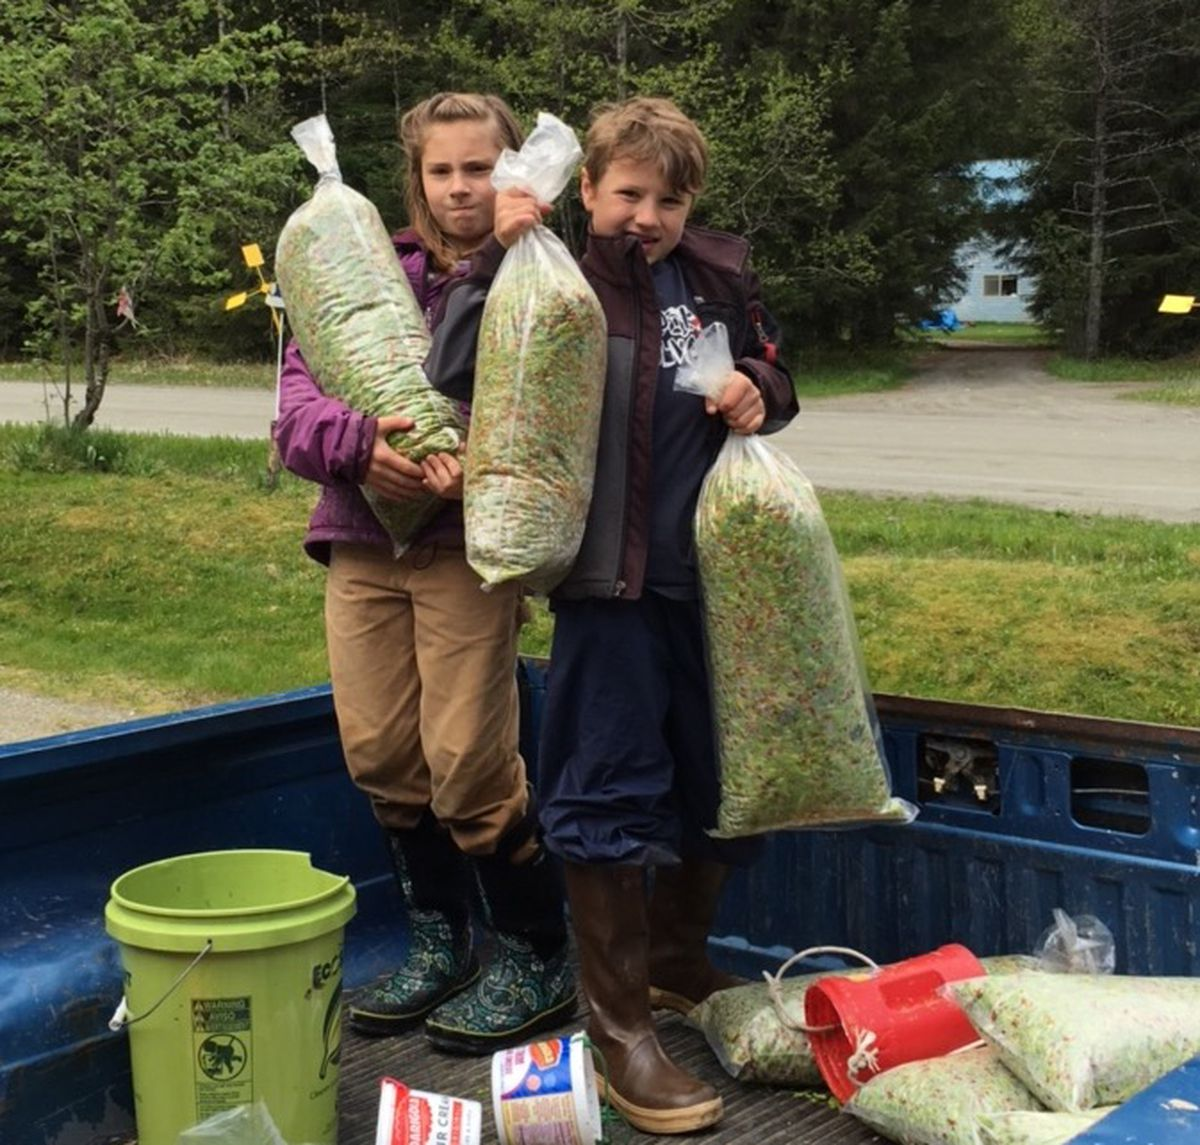 Millie and Phin Patrick, 10 and 8 years old, show off their harvest of Sitka spruce tips Thursday in Gustavu. The tips are harvested by the community and processed by Pep's Packing, which sell the spruce tips to breweries and restaurants in Southeast Alaska. (Pep Scott)